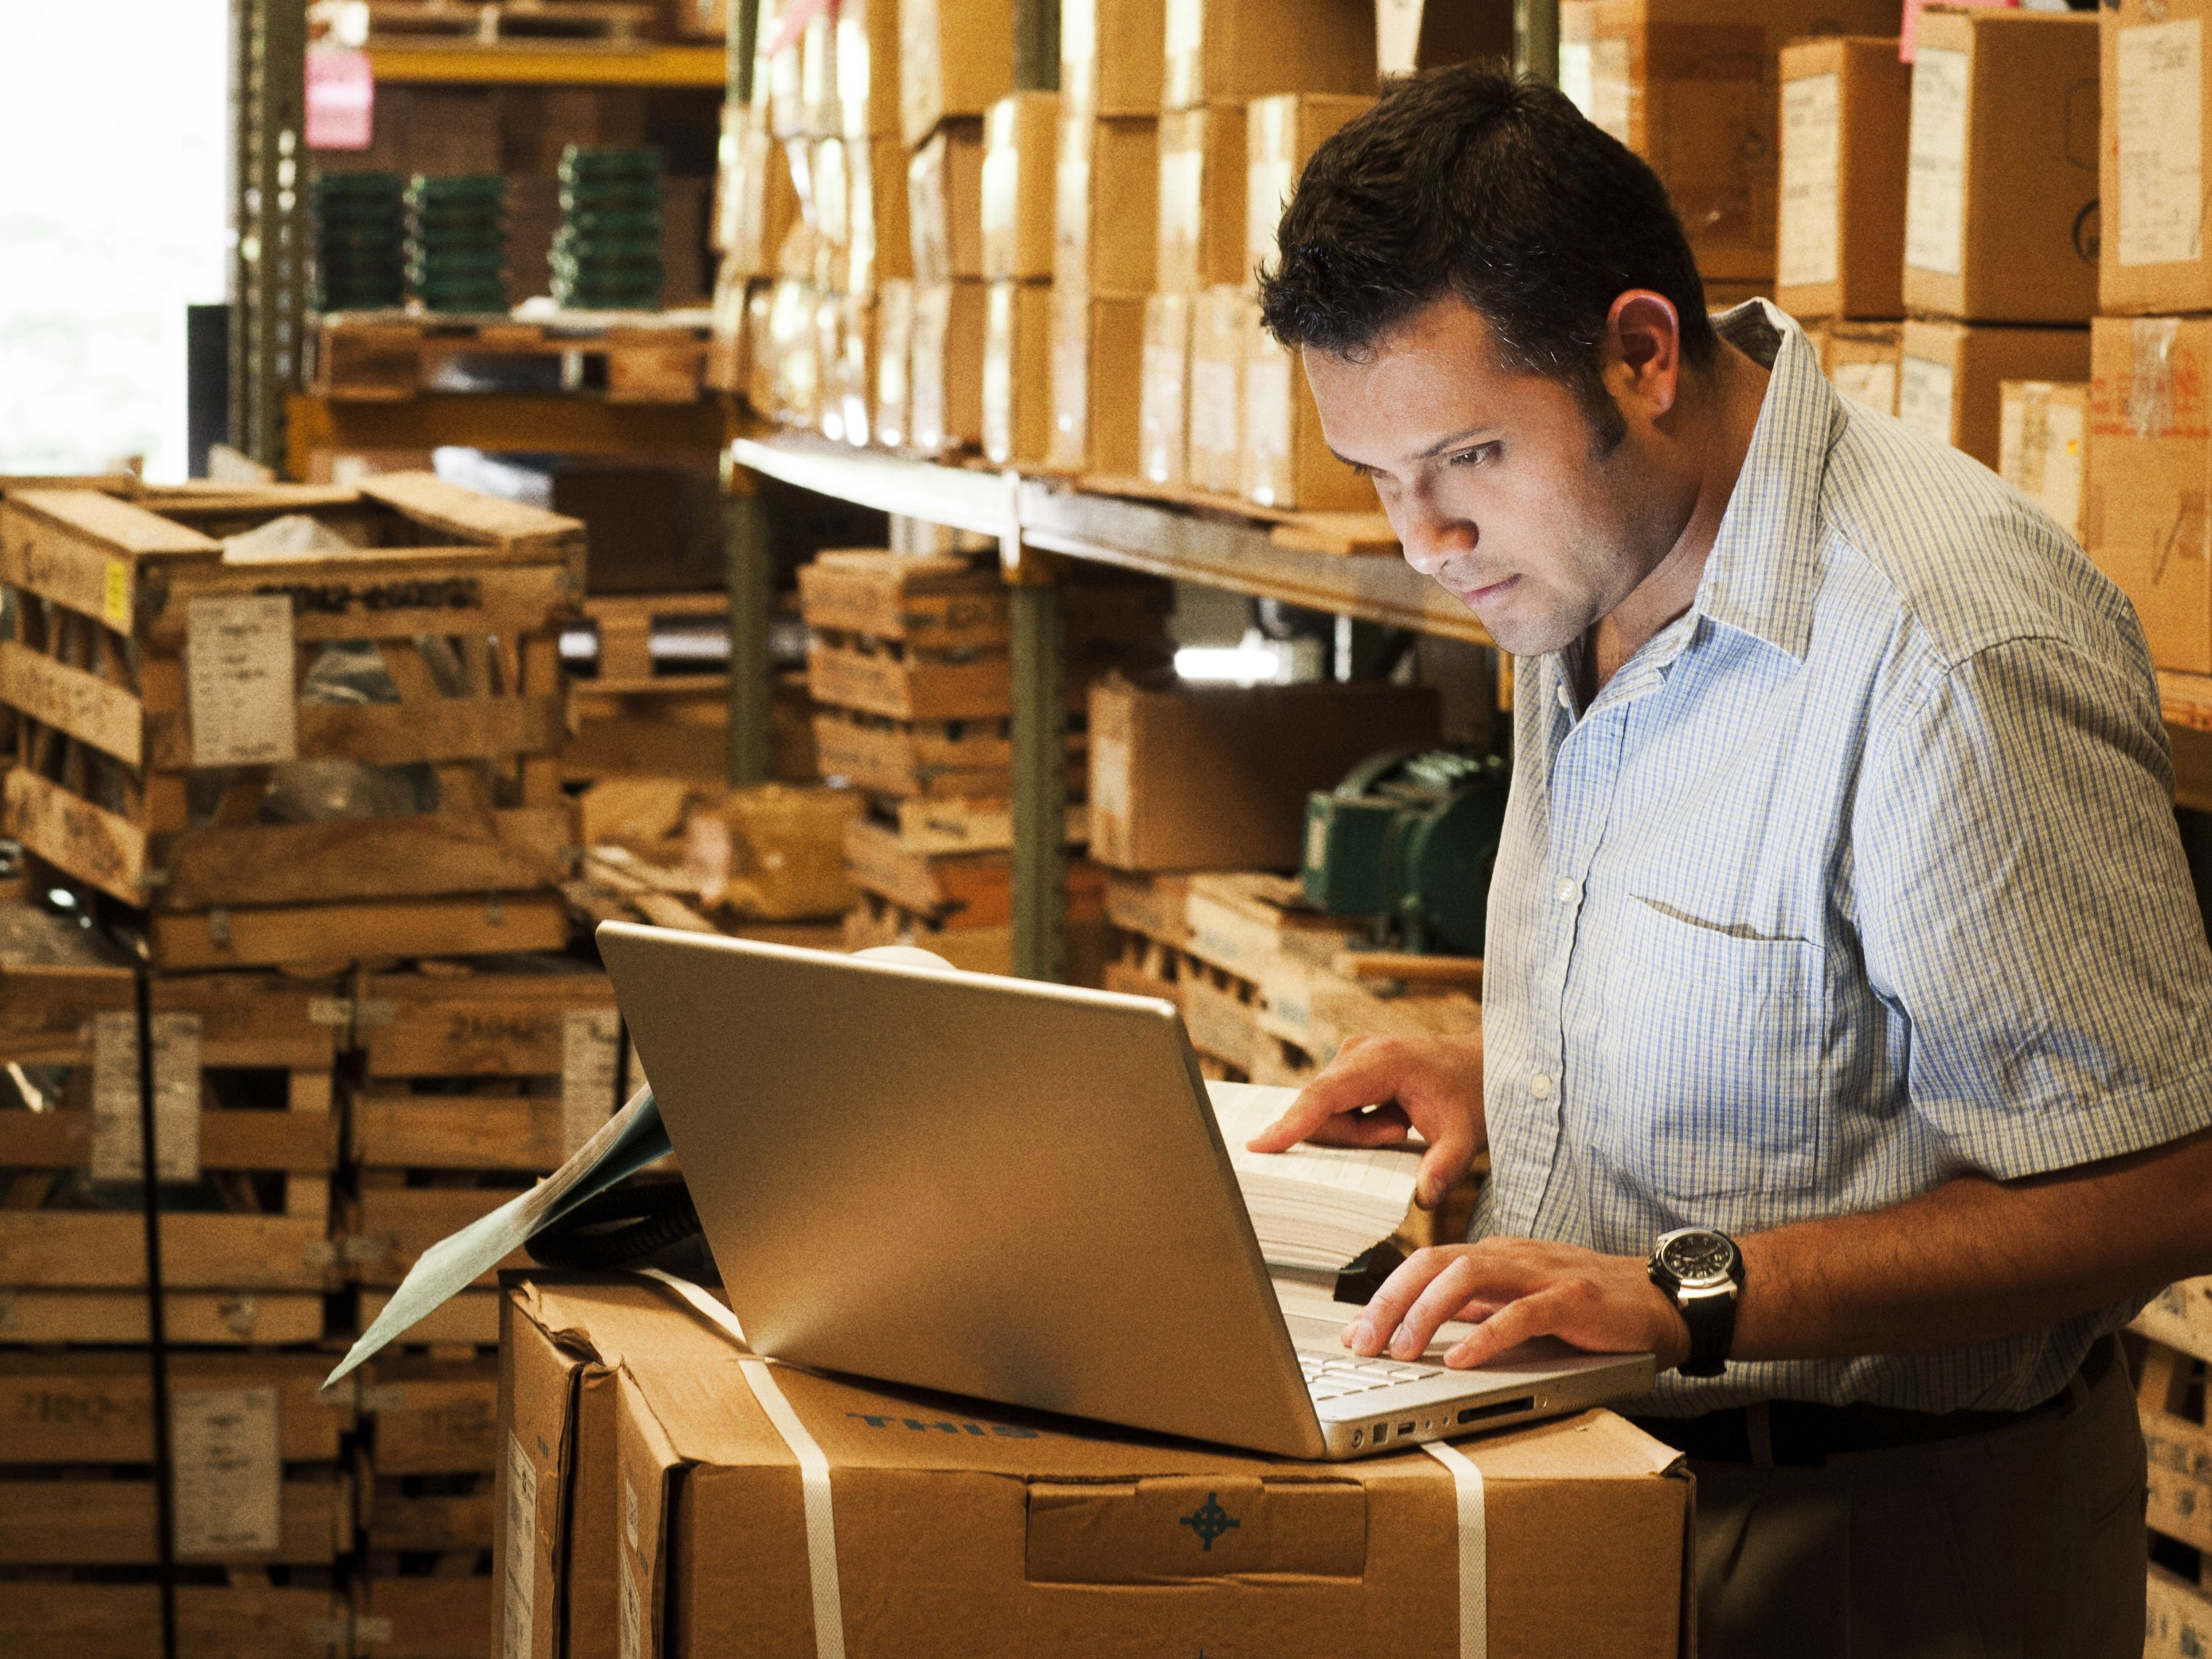 Inventory Optimization for Small Business